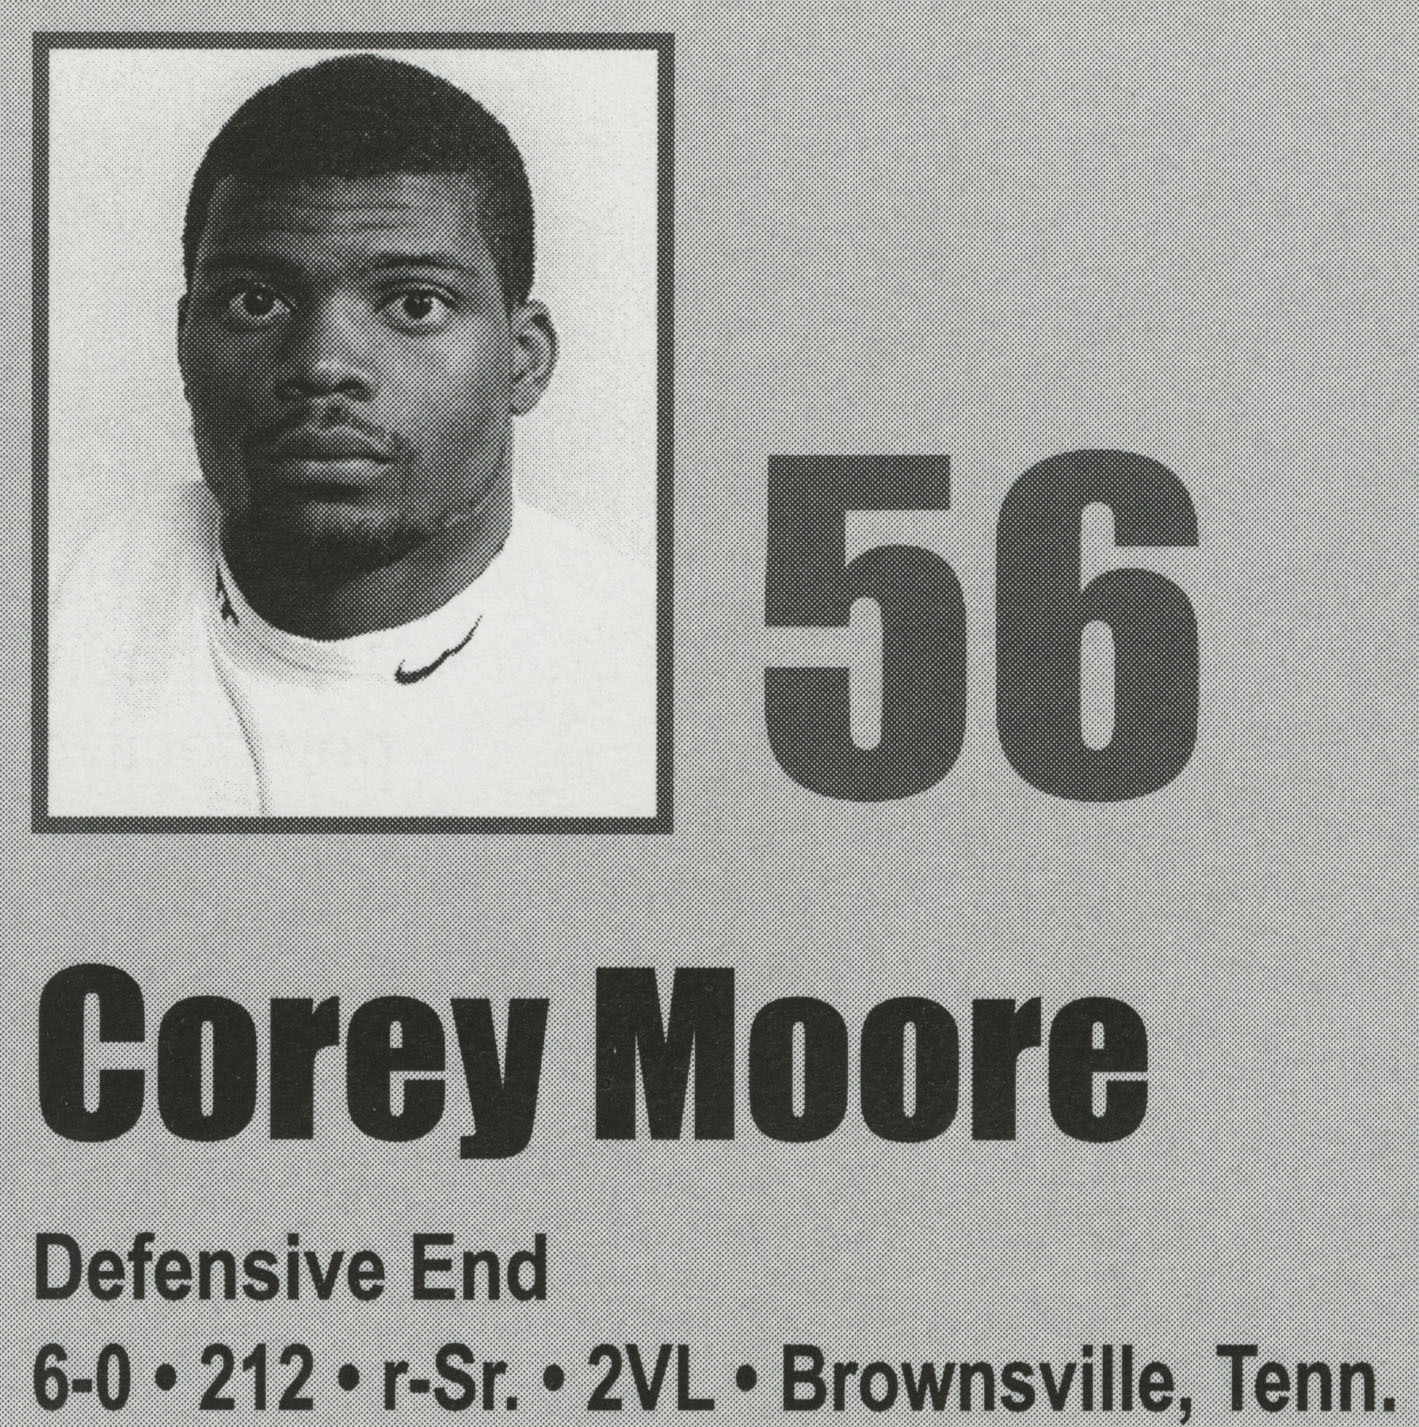 Corey_Moore_1999_AT_pg77.jpg